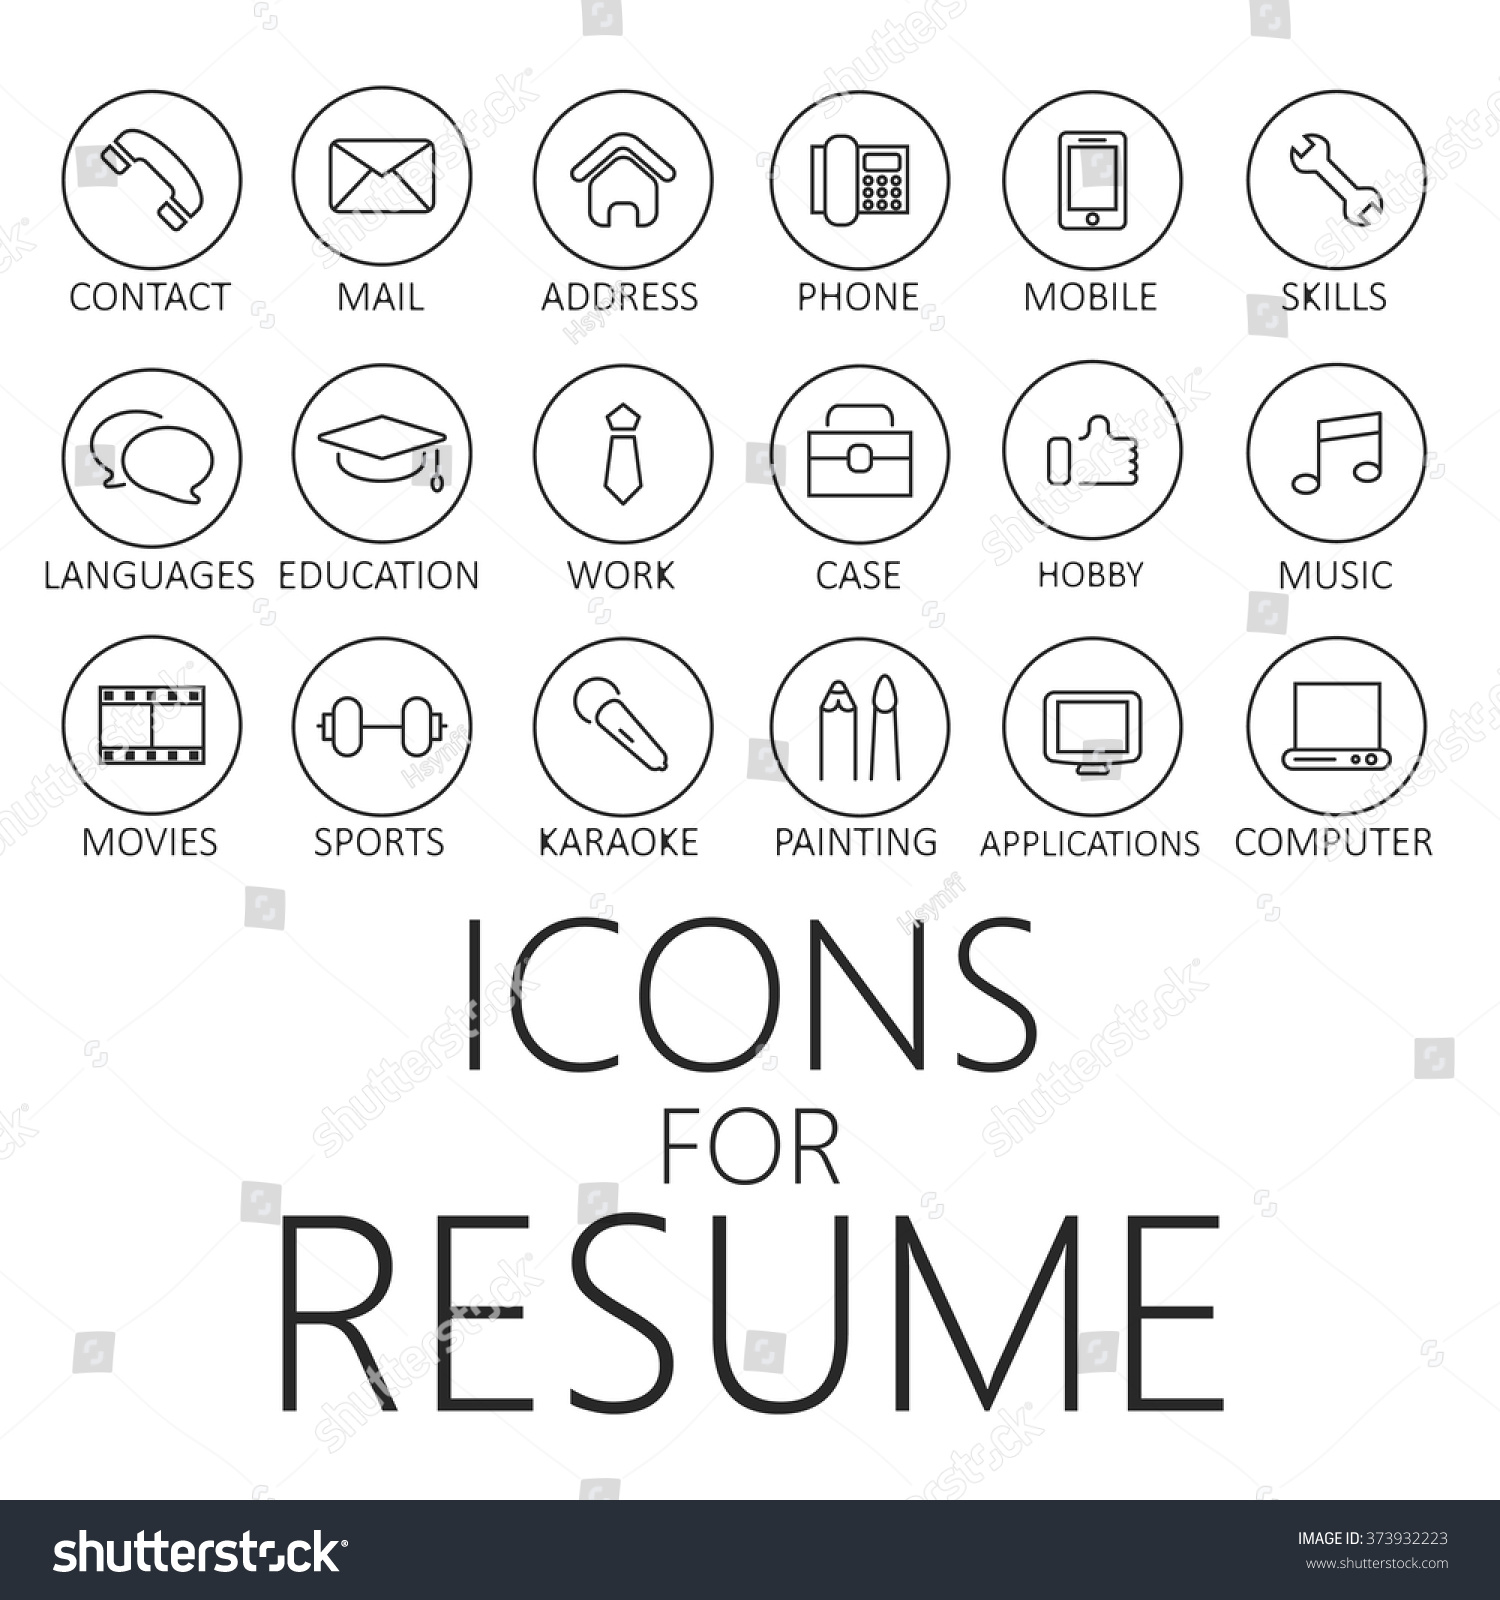 thin line icons pack cv resume stock vector 373932223 shutterstock thin line icons pack for cv resume job